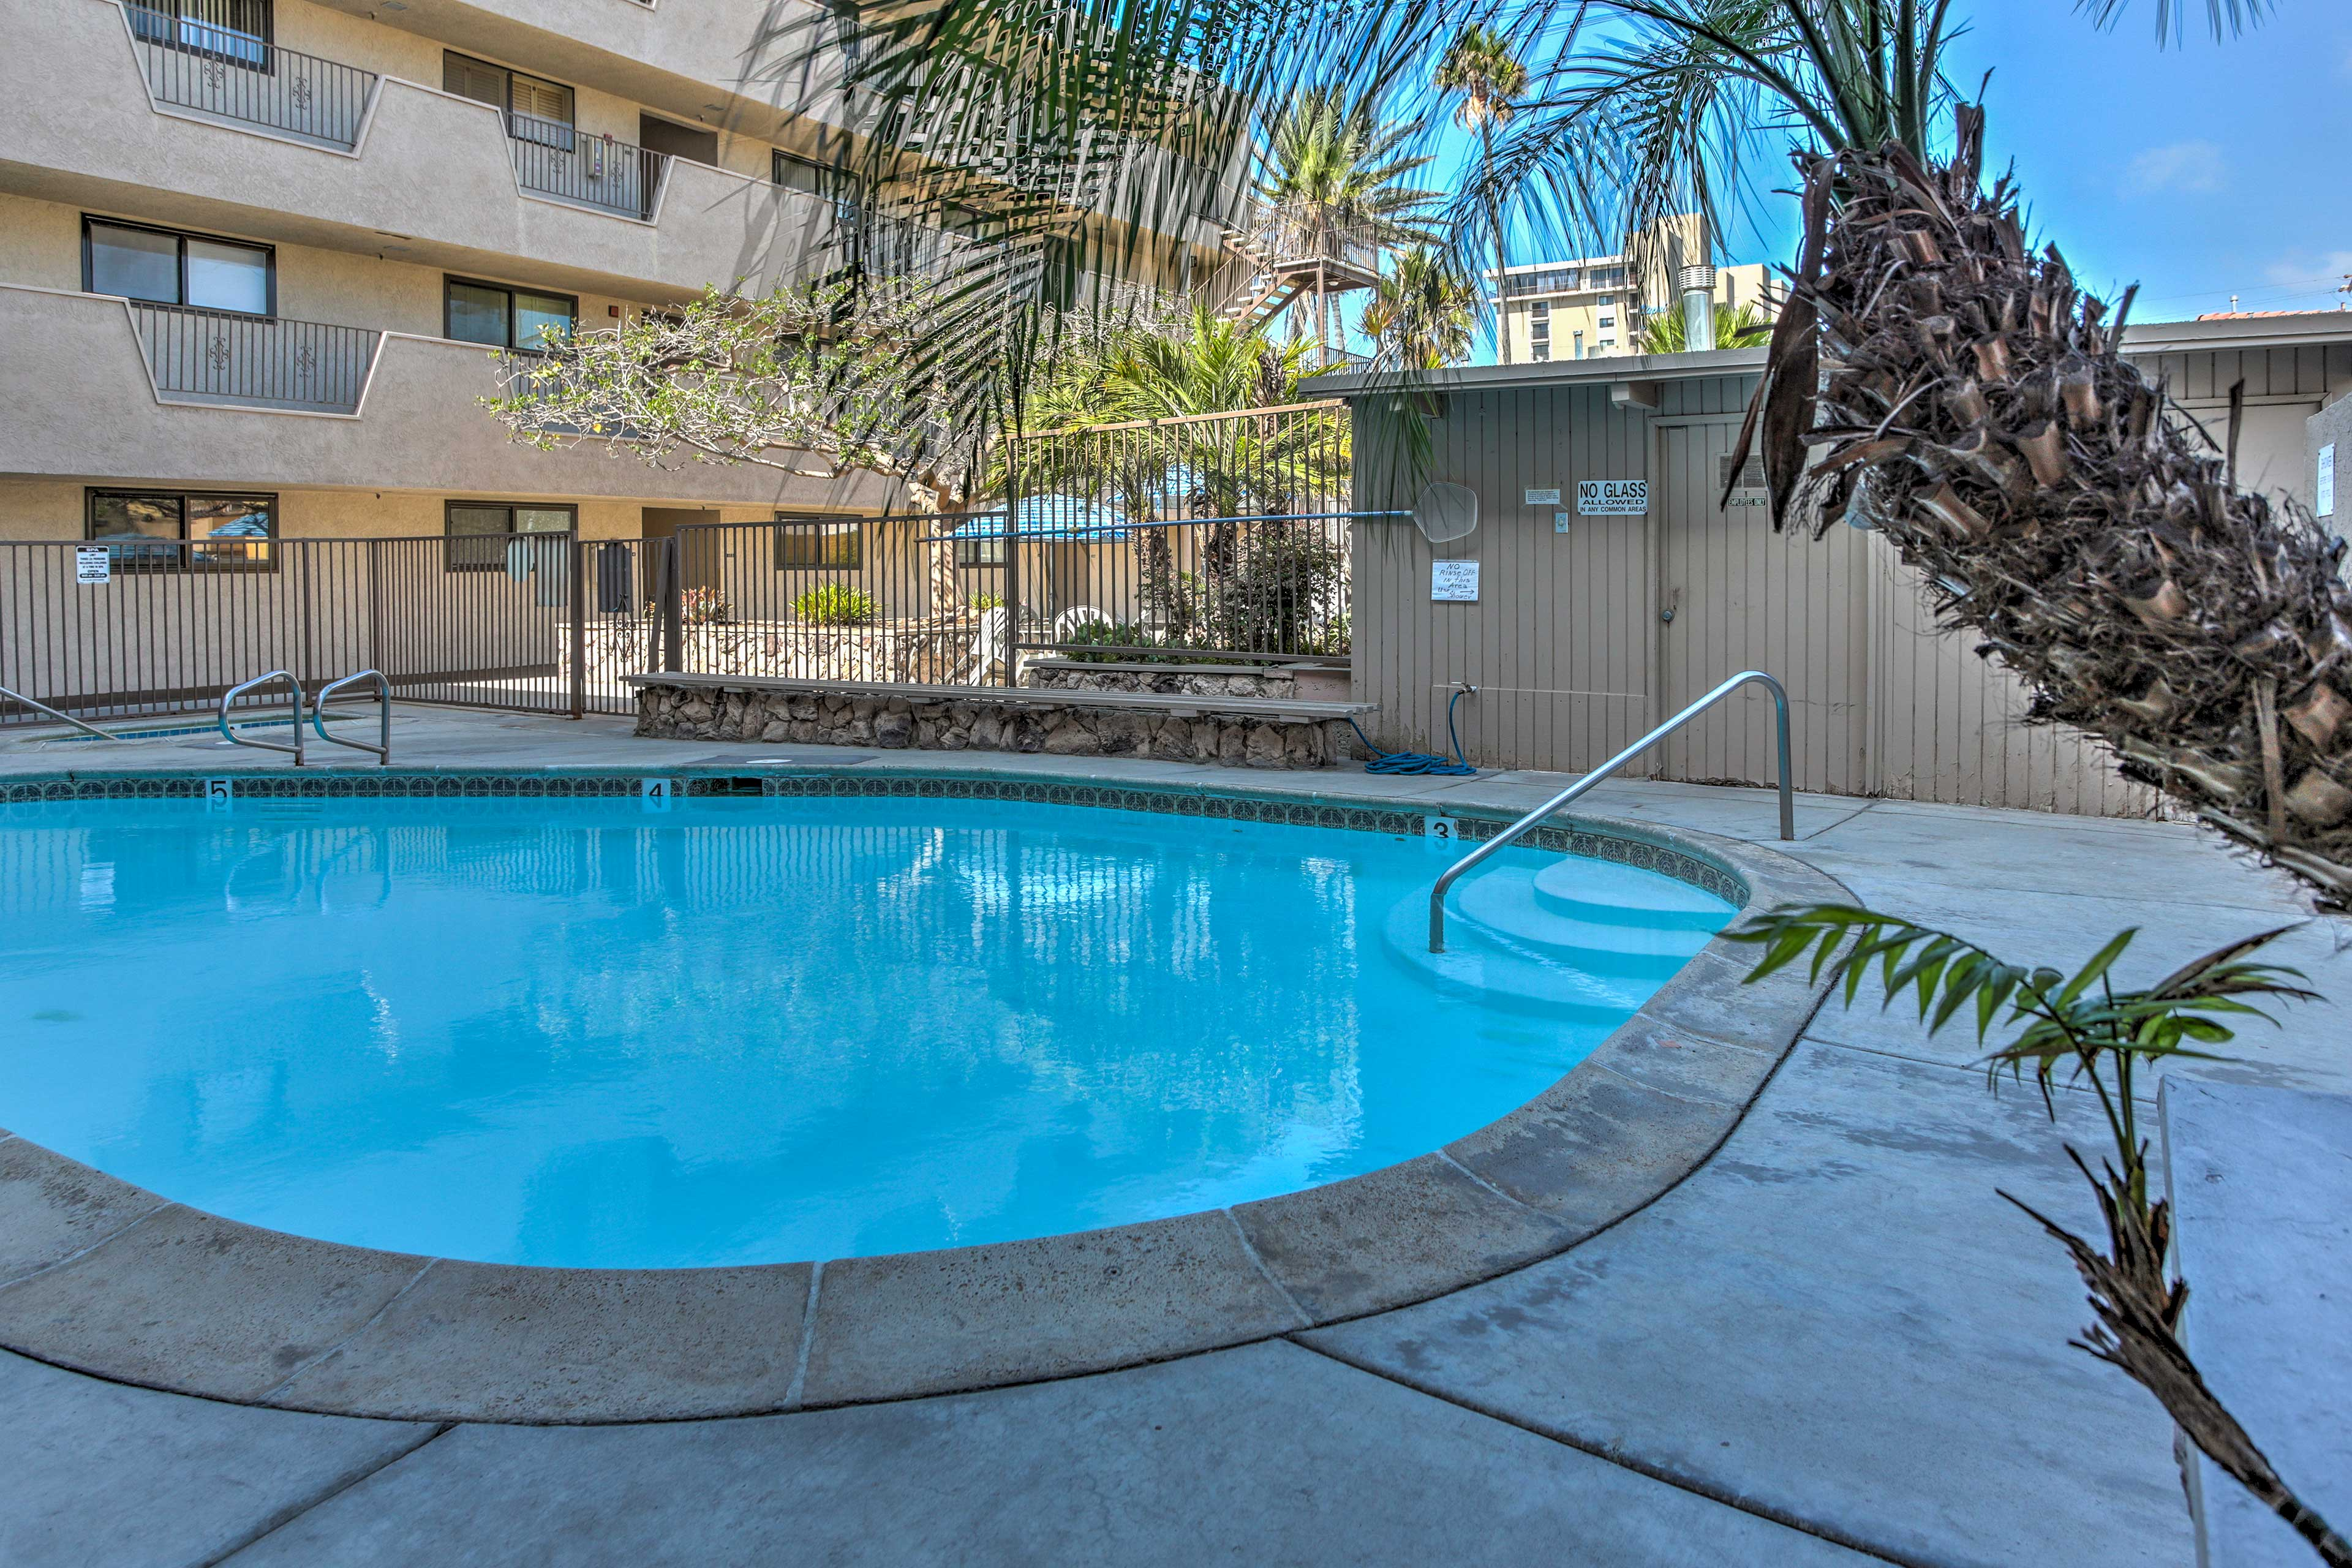 The community features a pool & hot tub for an afternoon dip or late night soak.